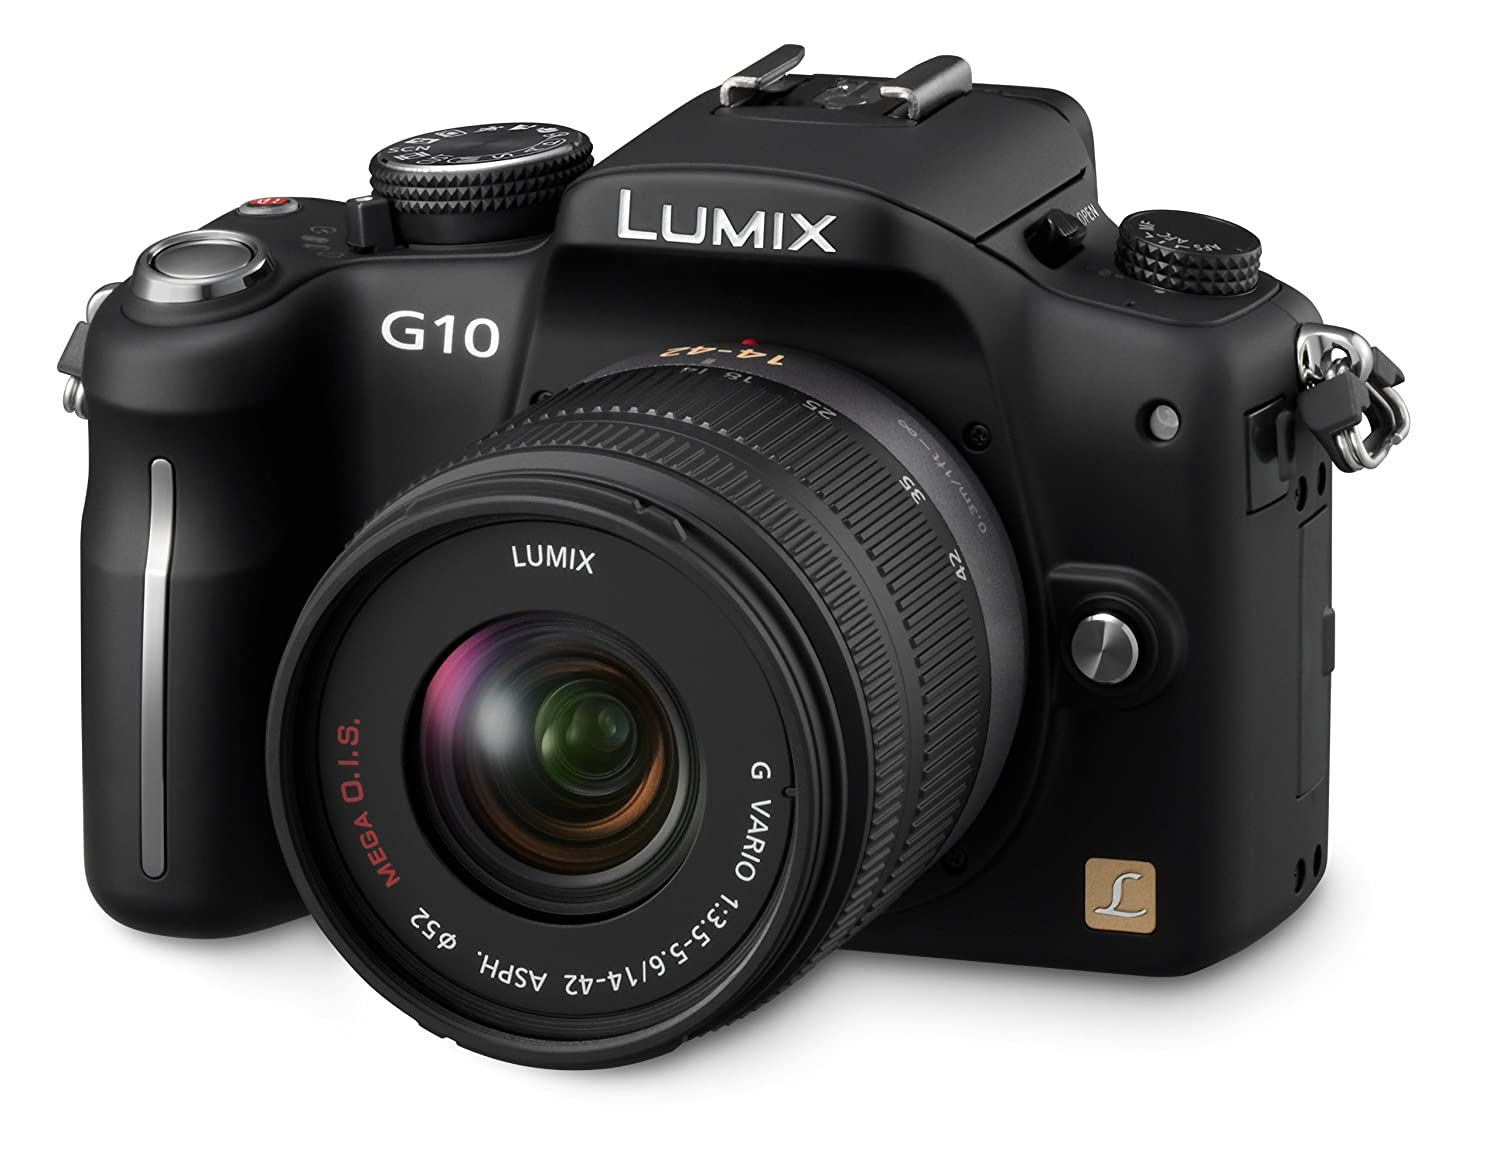 Panasonic lumix dmc-g10 review digitalcamerareview.